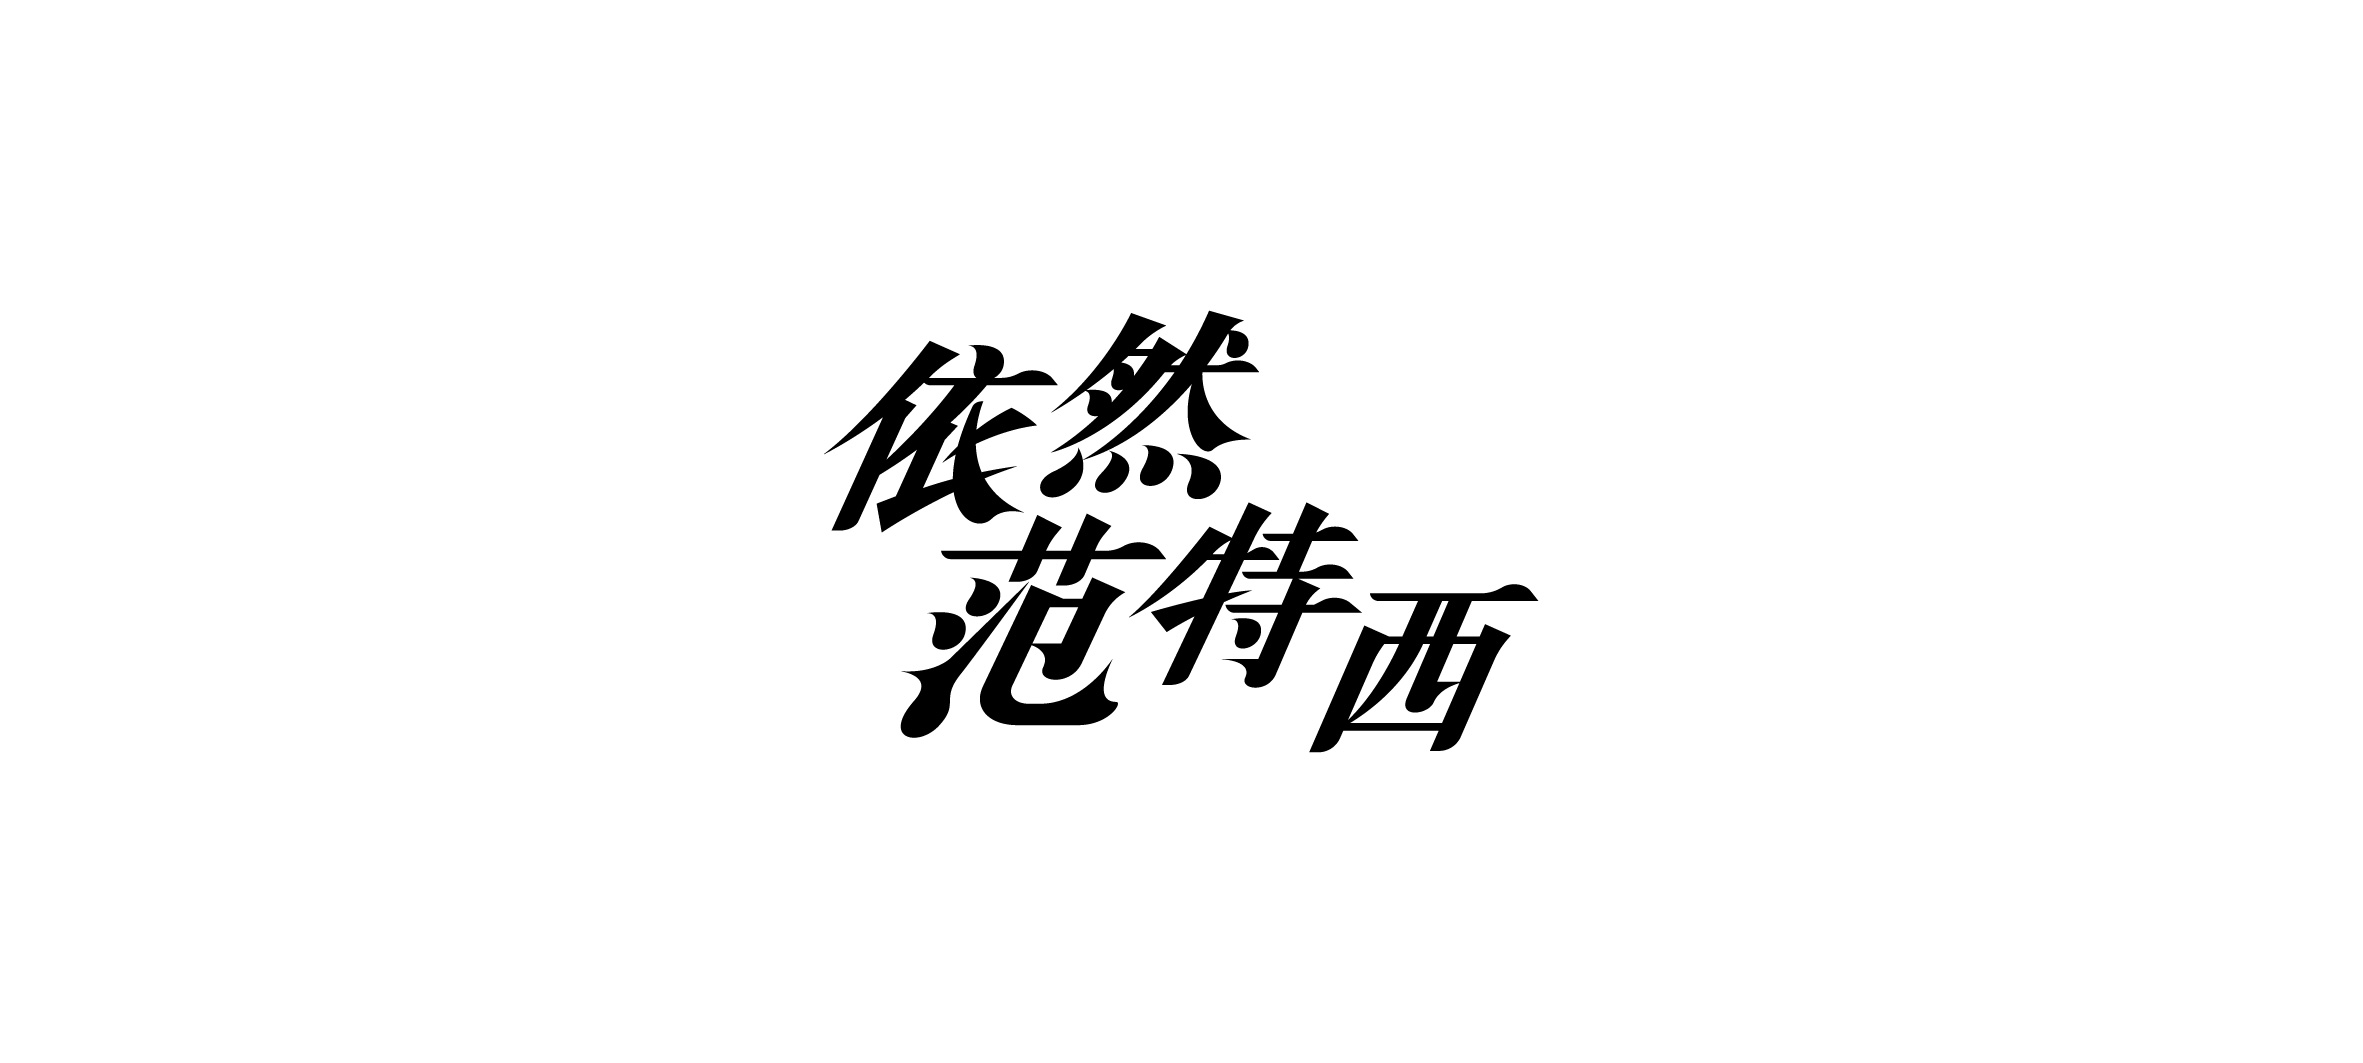 18P Collection of the latest Chinese font design schemes in 2021 #.242